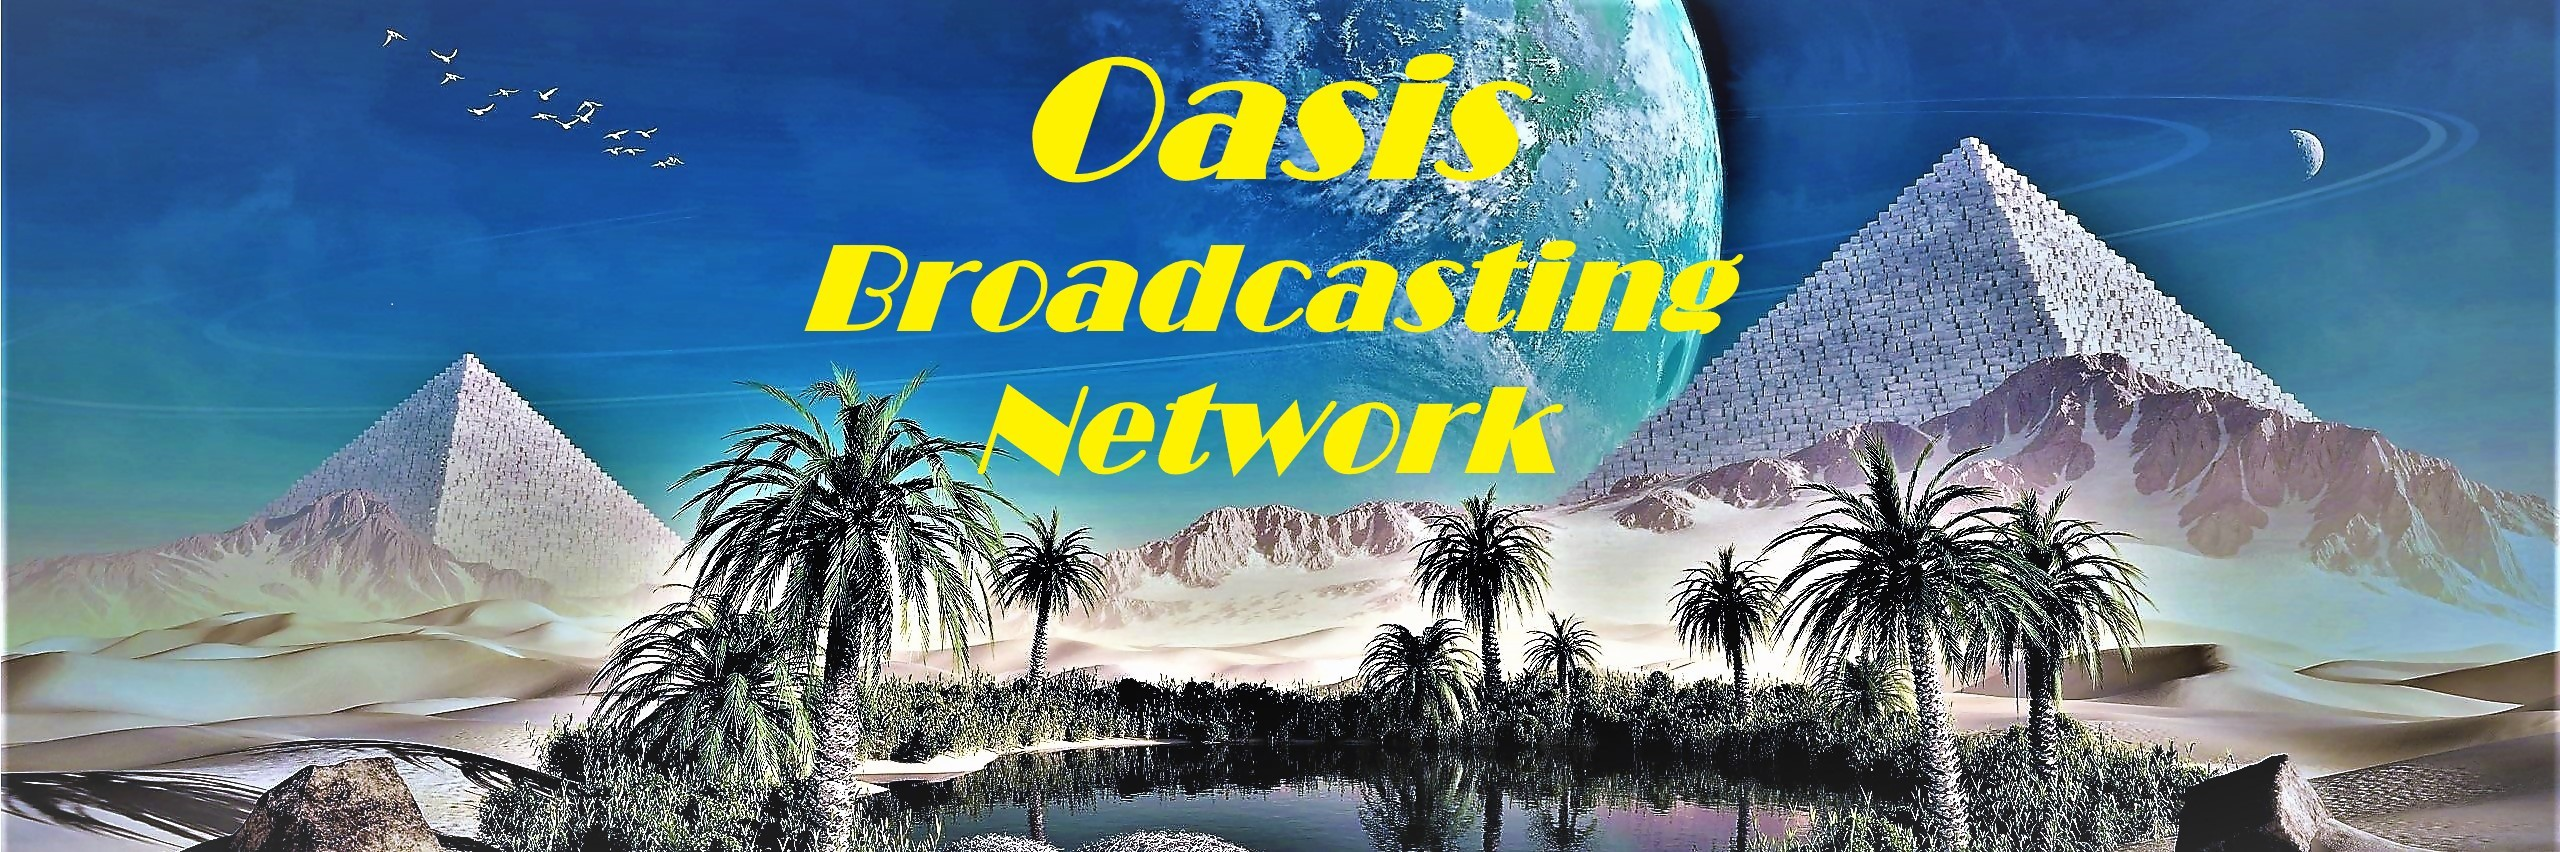 Oasis Broadcasting Network